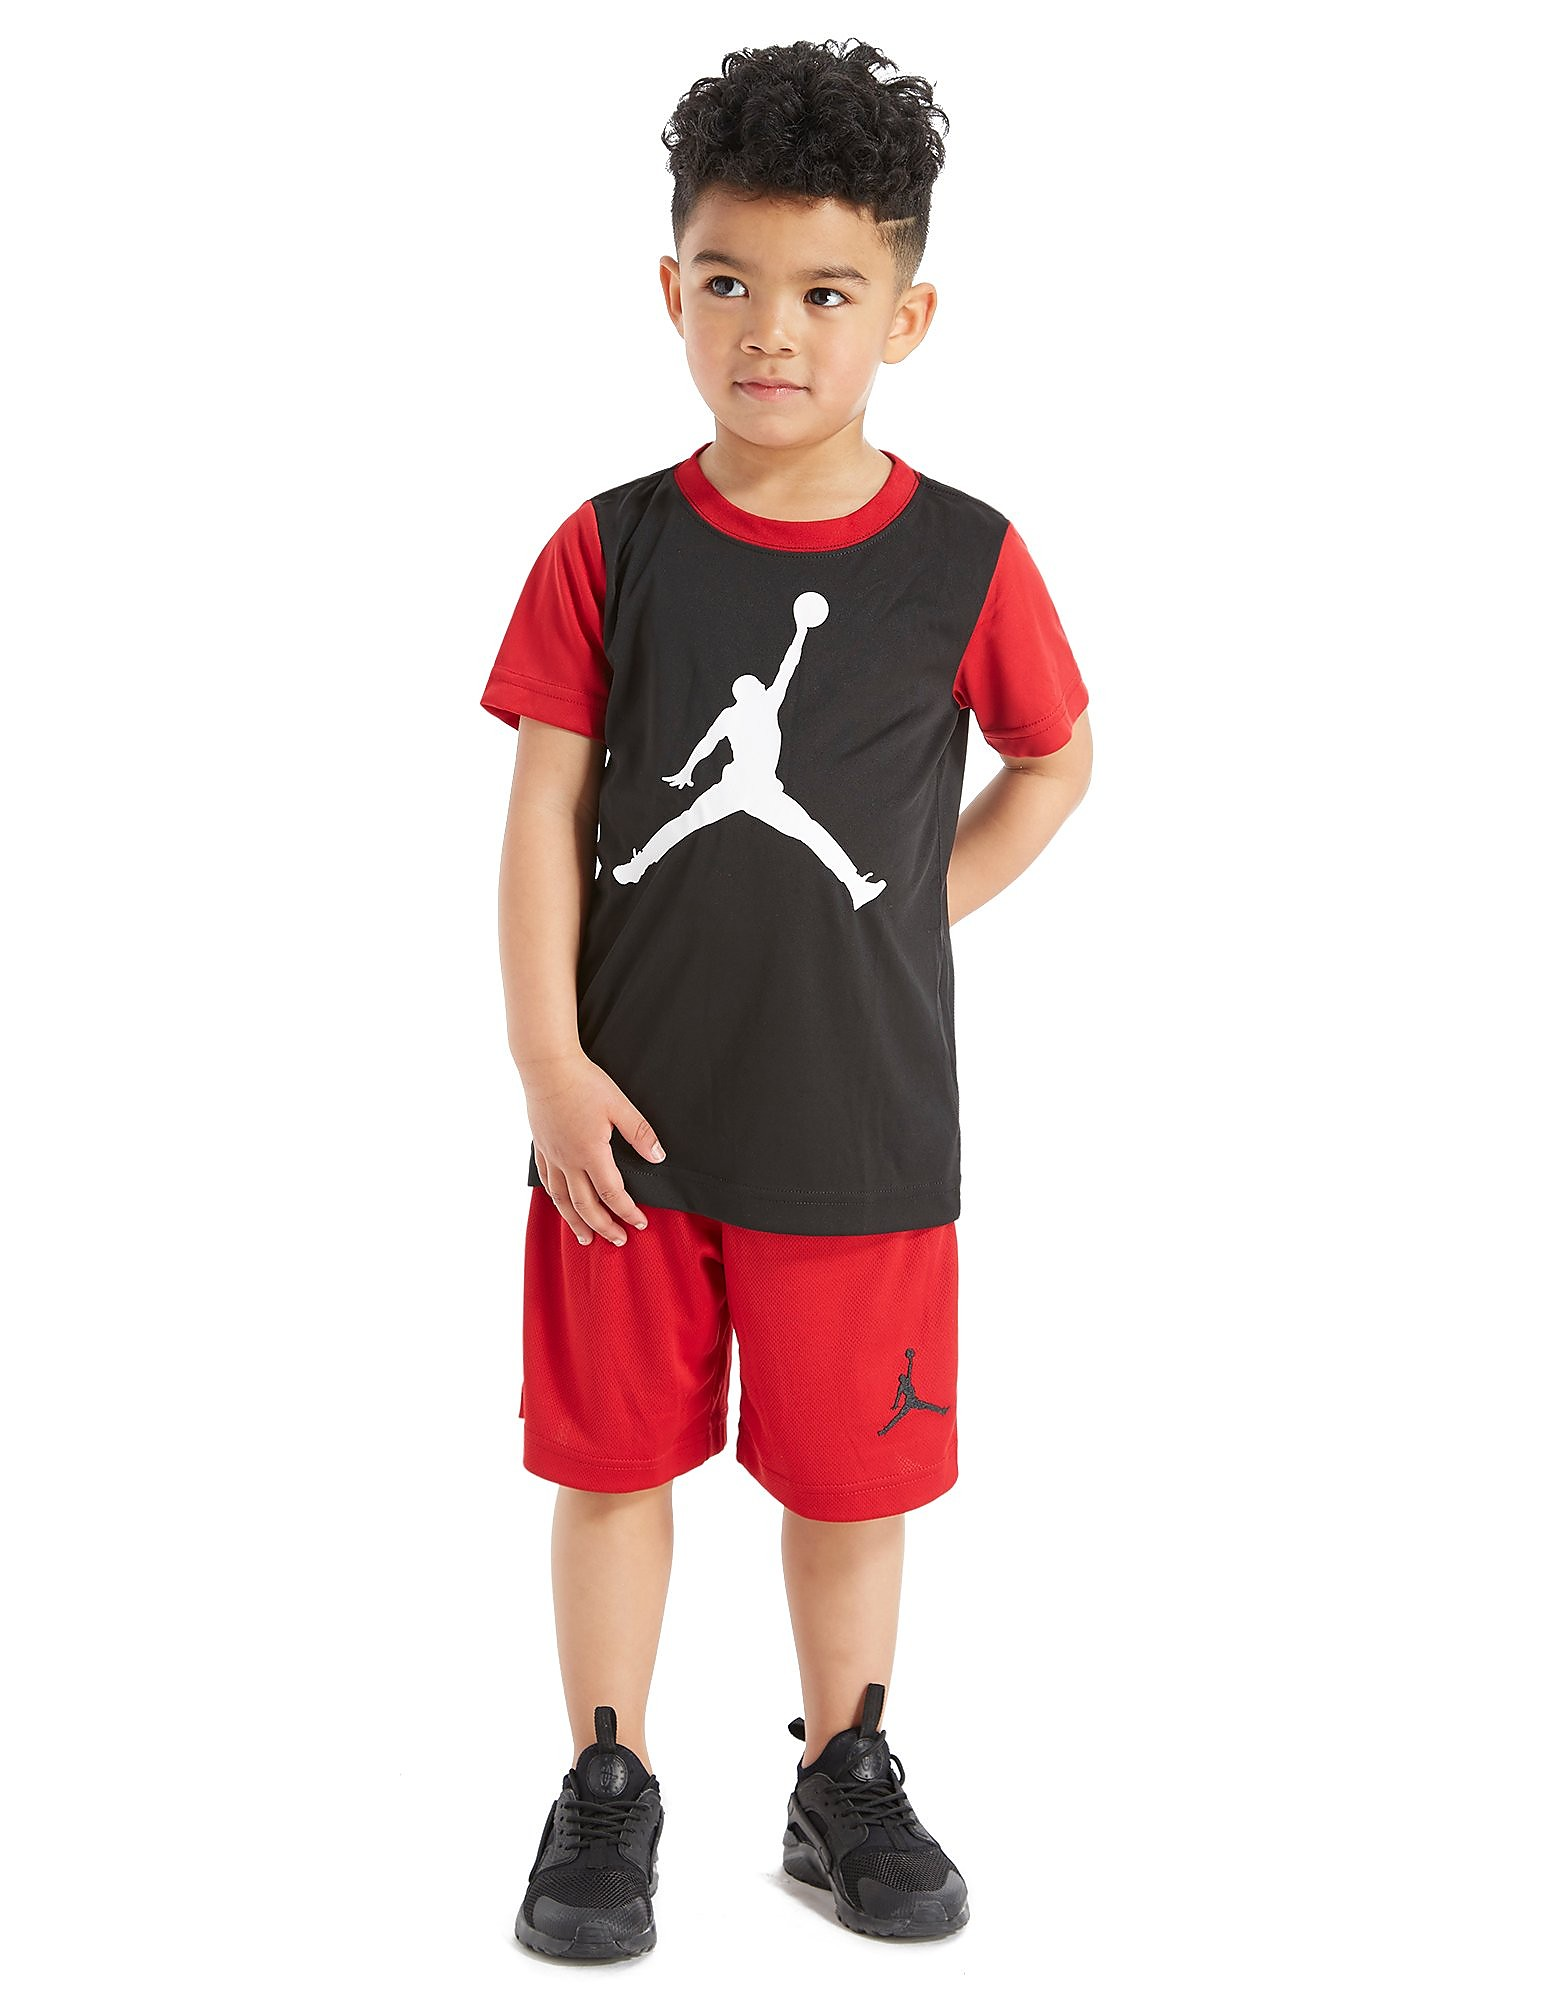 Jordan Jumpman 4 Life T-Shirt/Short Set Children